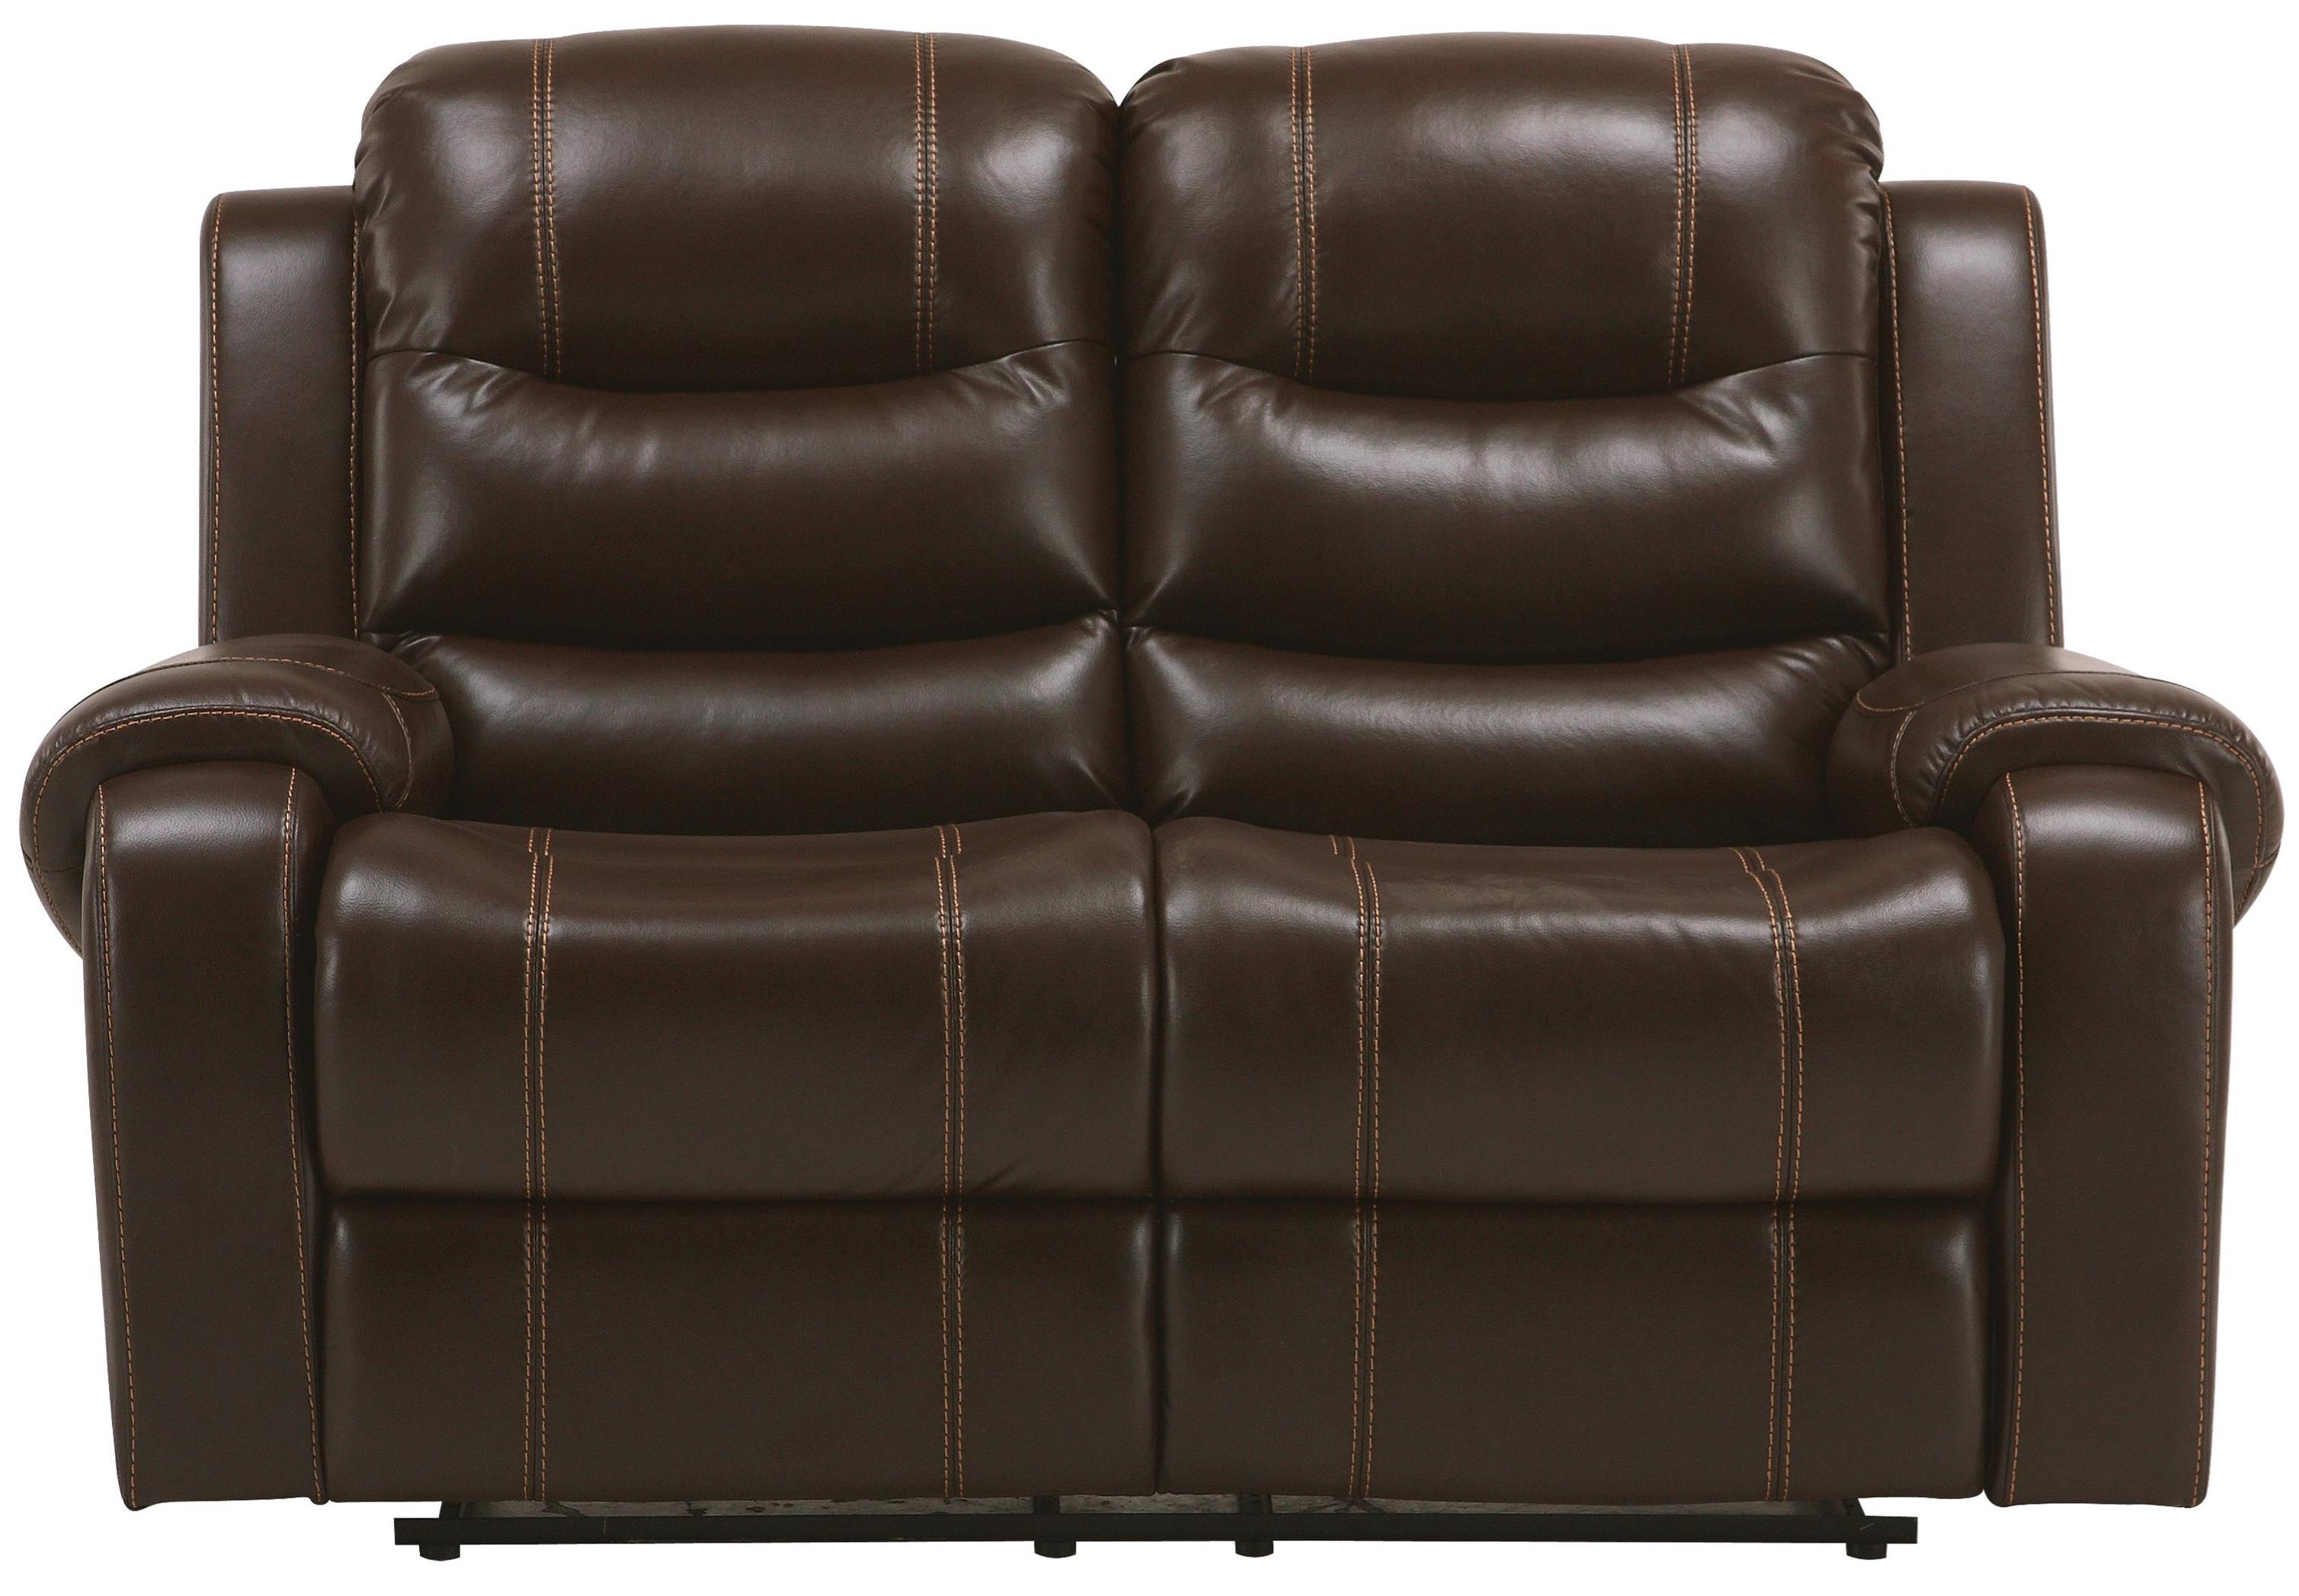 Parker Living Brahms Reclining Loveseat - Item Number: MBRA-822-MAH